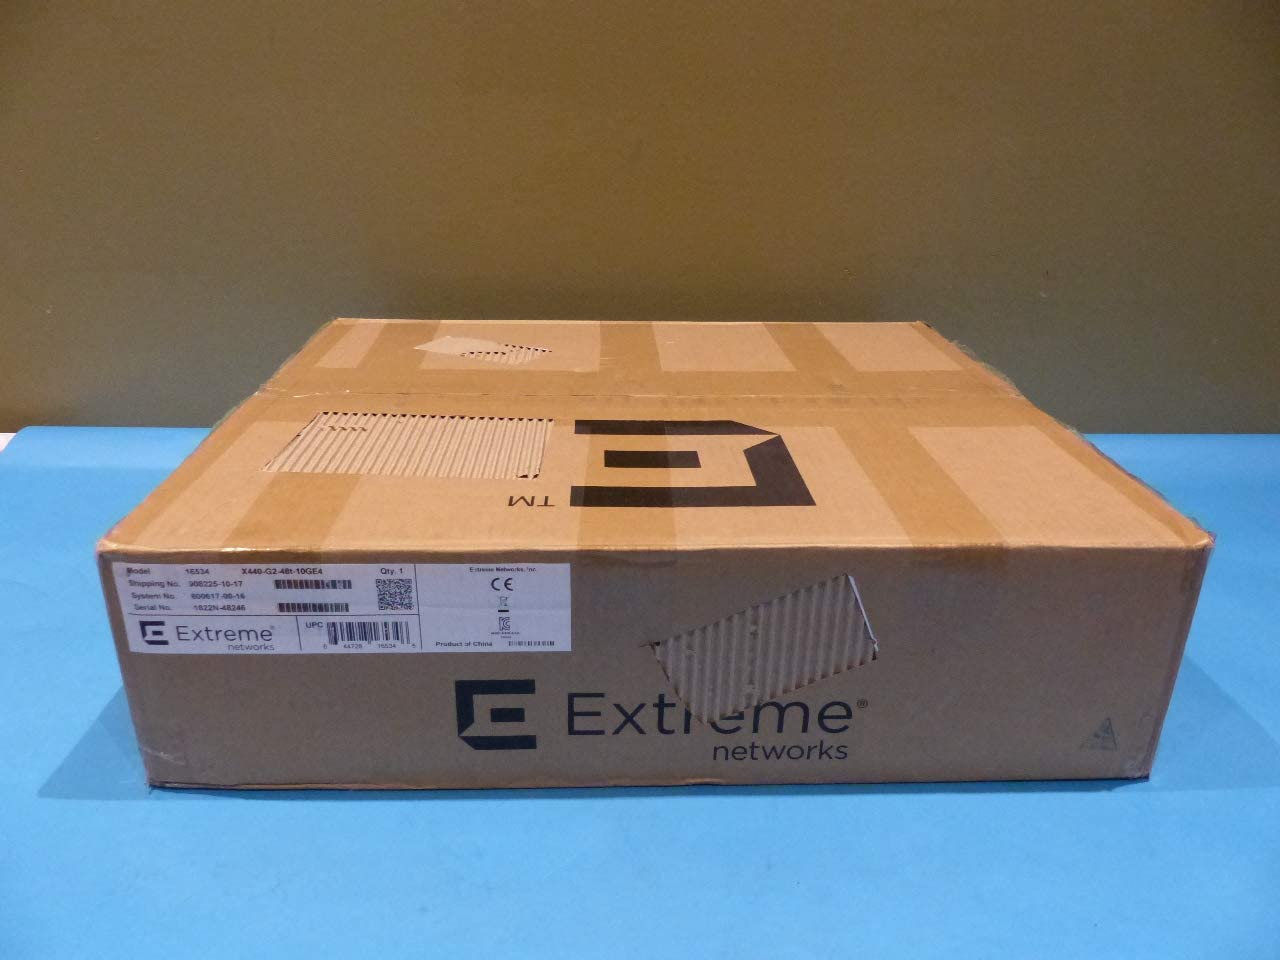 Extreme Max 54% Cheap OFF Networks X440-G2-48t-10GE4 Ethernet Switch